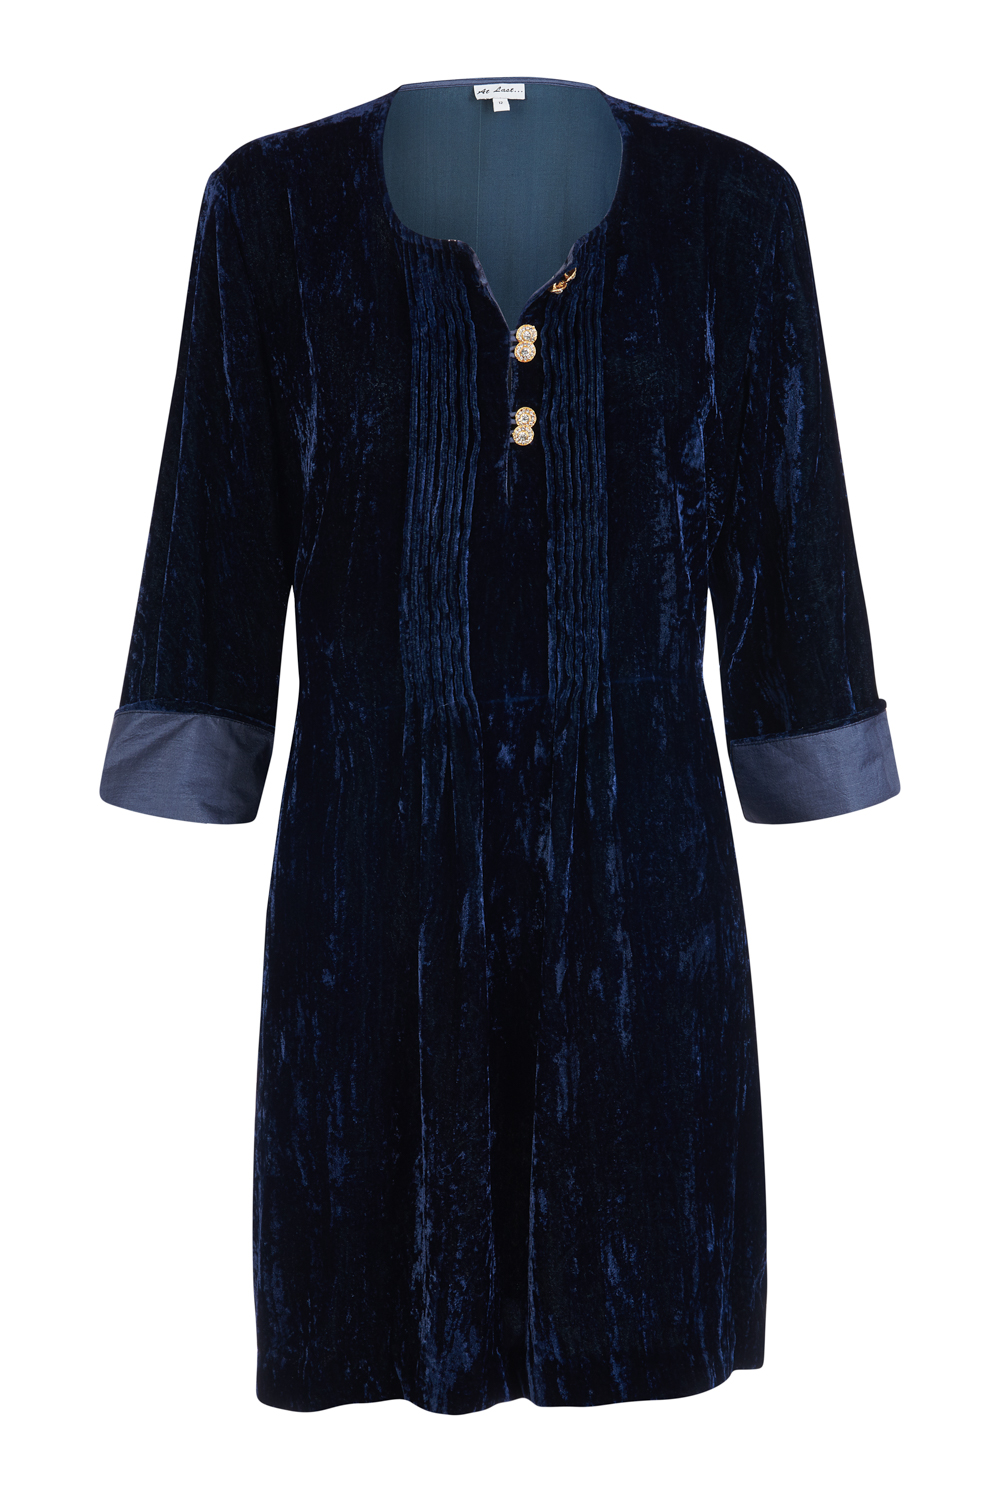 At Last Ferragamo - with diamond buttons Navy